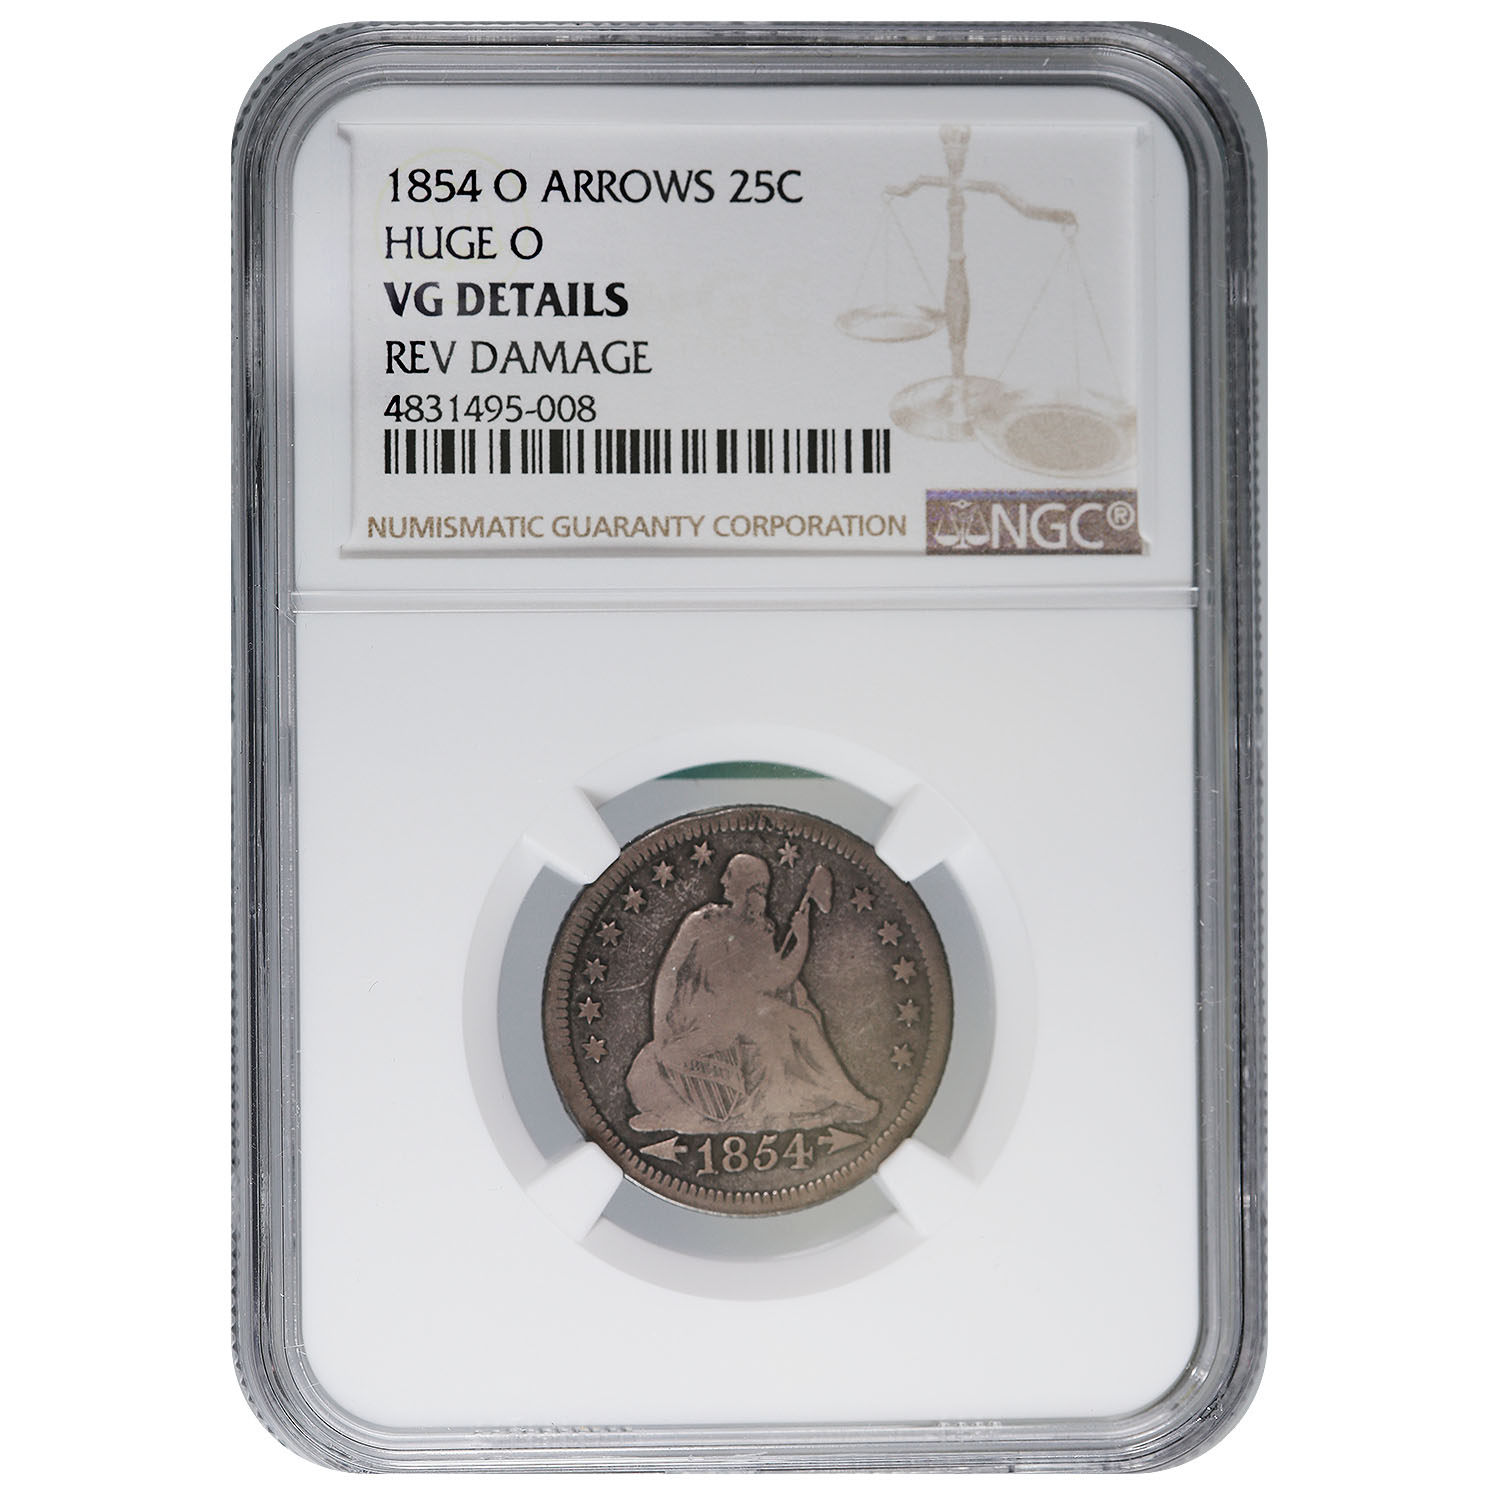 Certified Seated Liberty Quarter 1854-O HUGE O Arrows VG Details NGC